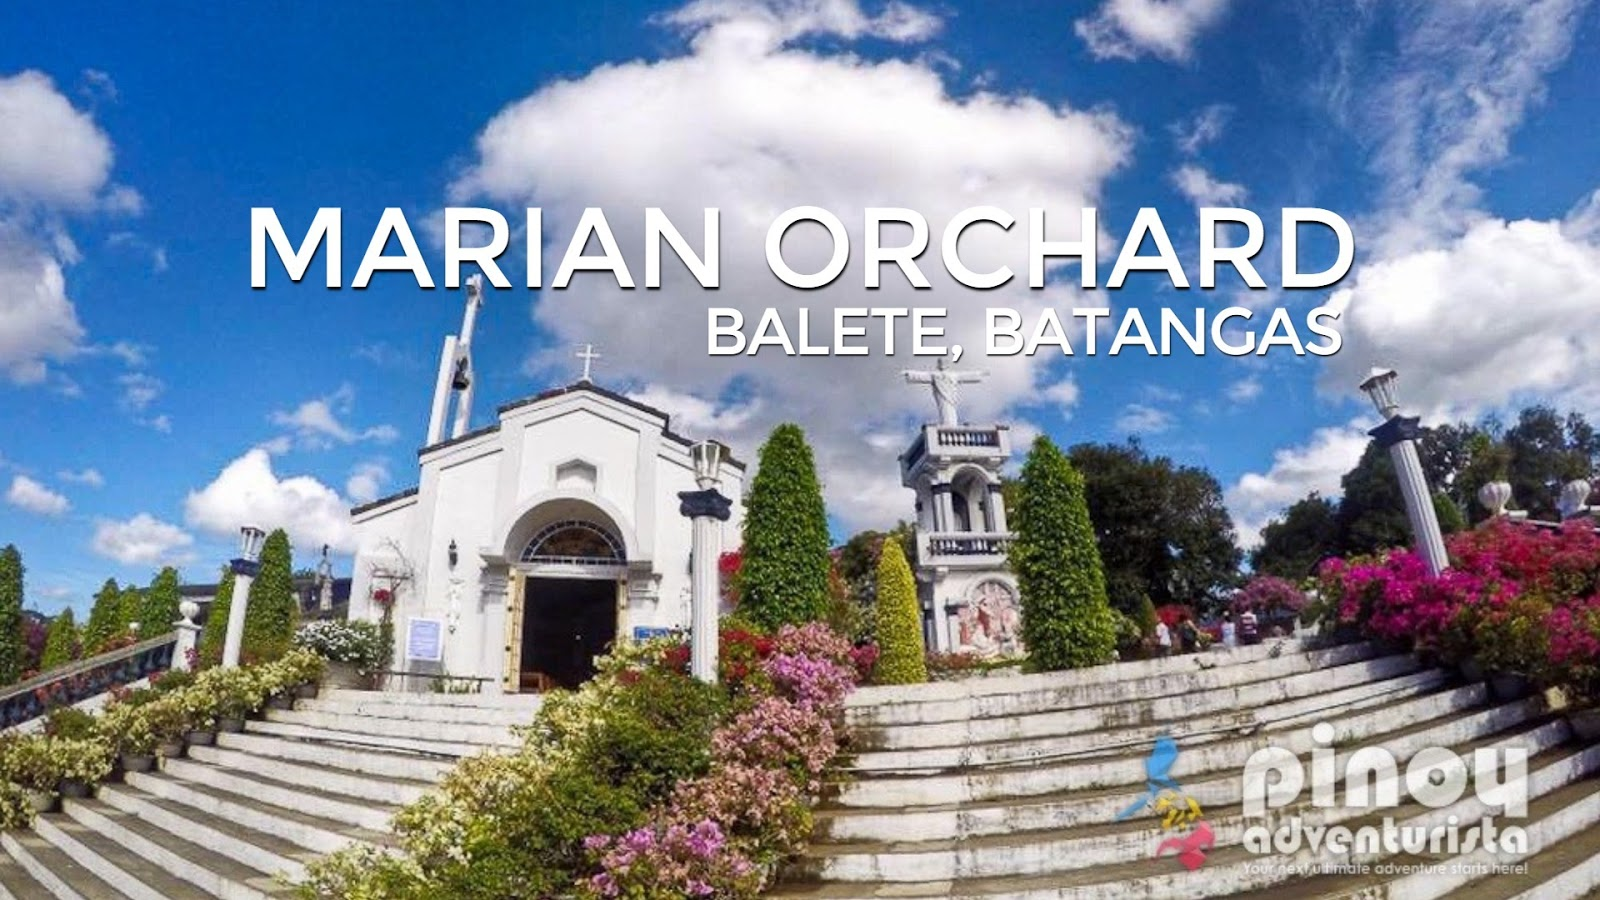 The Marian Orchard Pilgrimage Site In Batangas With